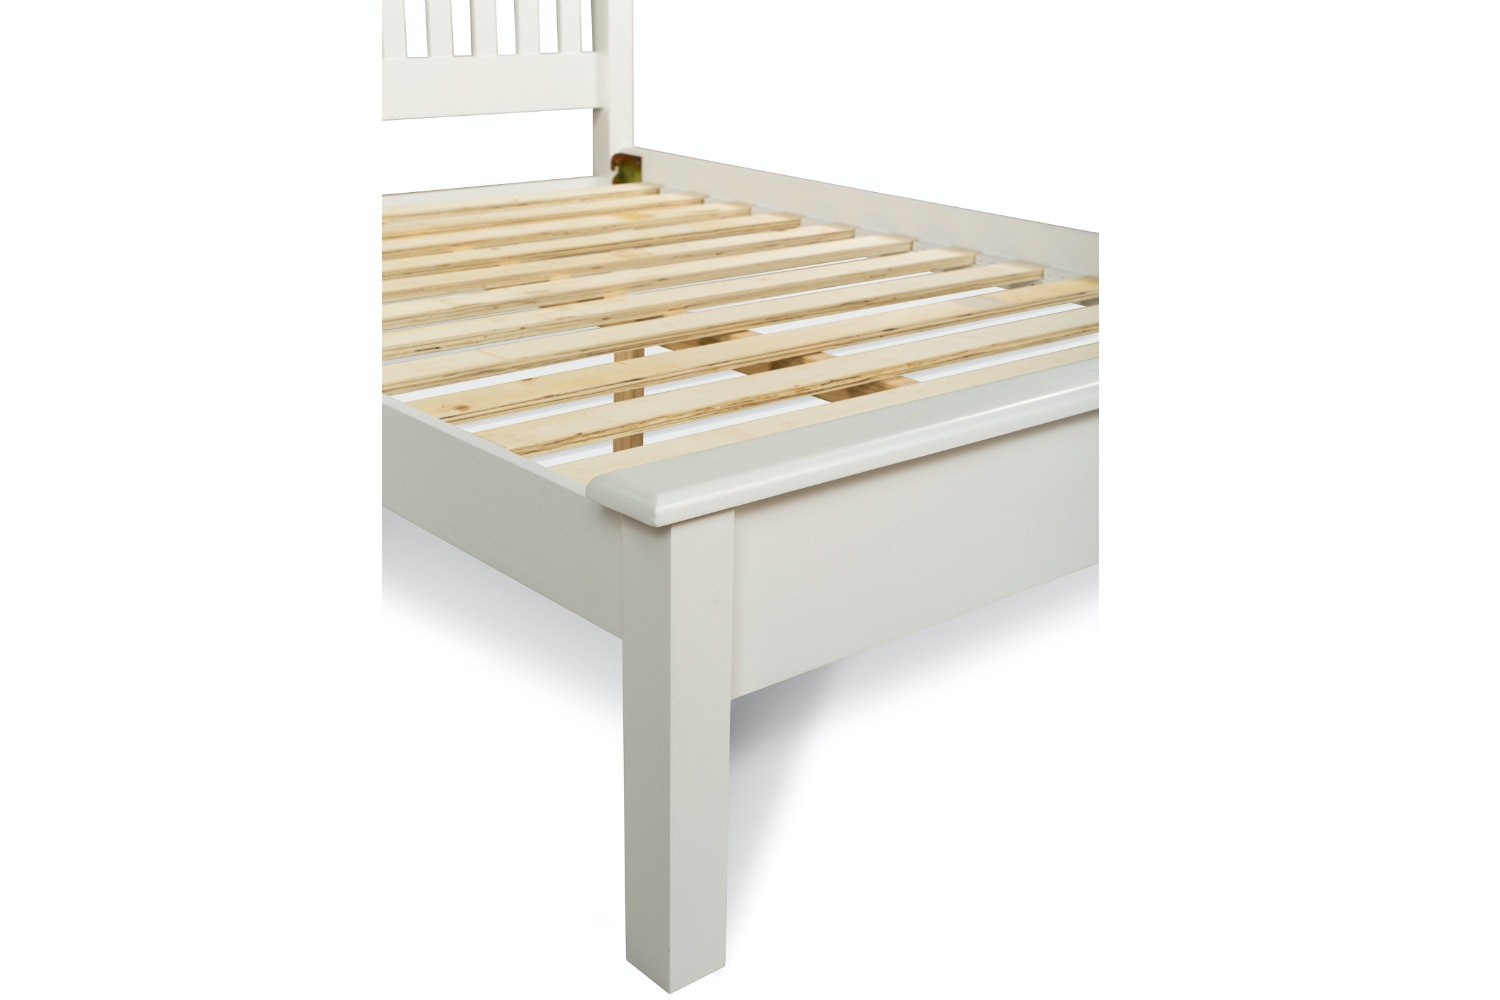 Shaker Double Bed Frame | 4ft6 | White